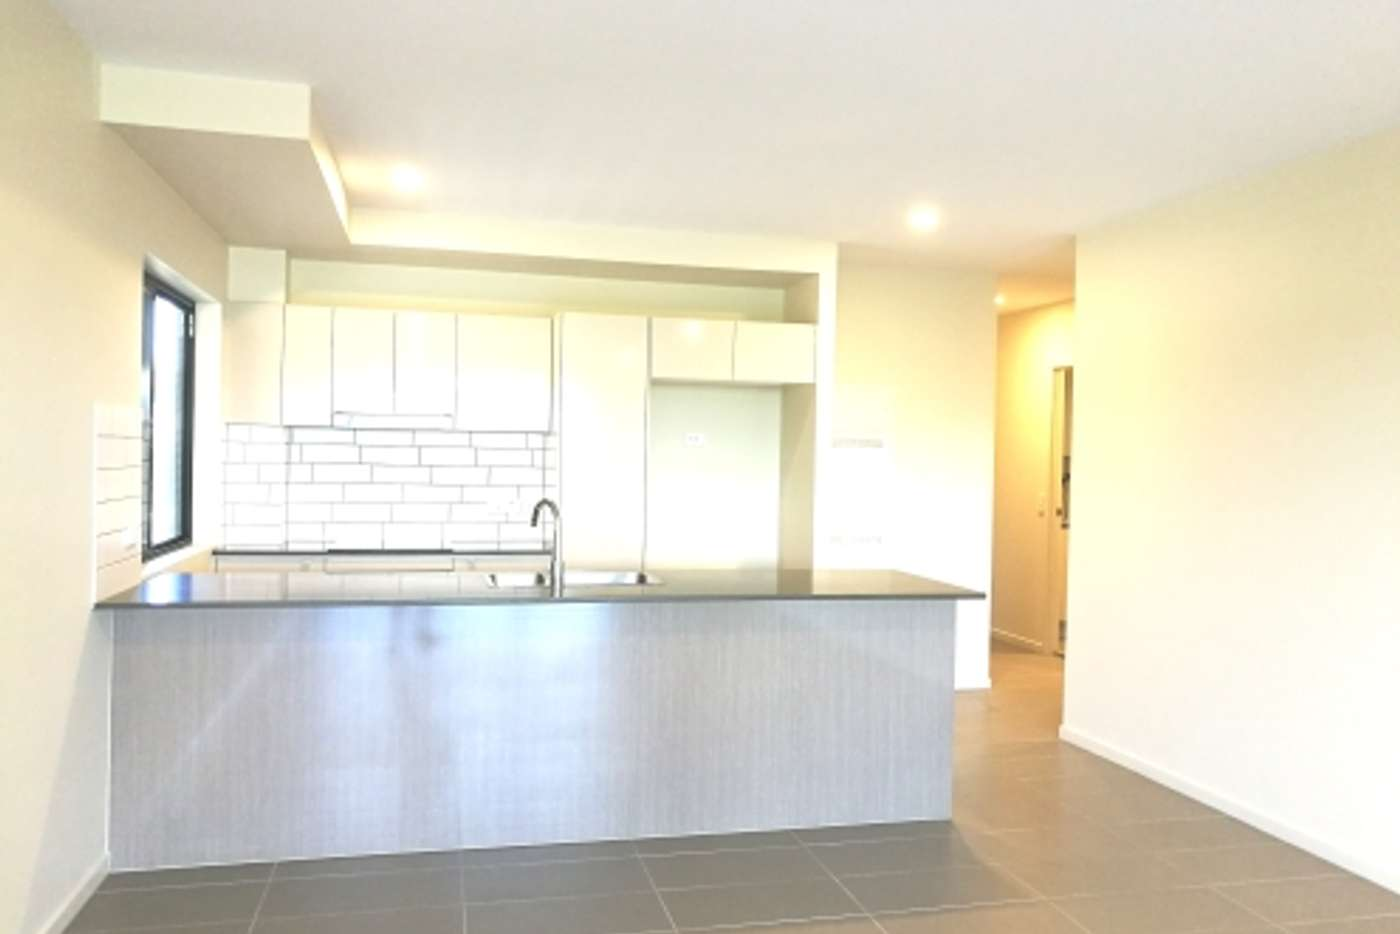 Sixth view of Homely apartment listing, 12/14 Gallway Street, Windsor QLD 4030